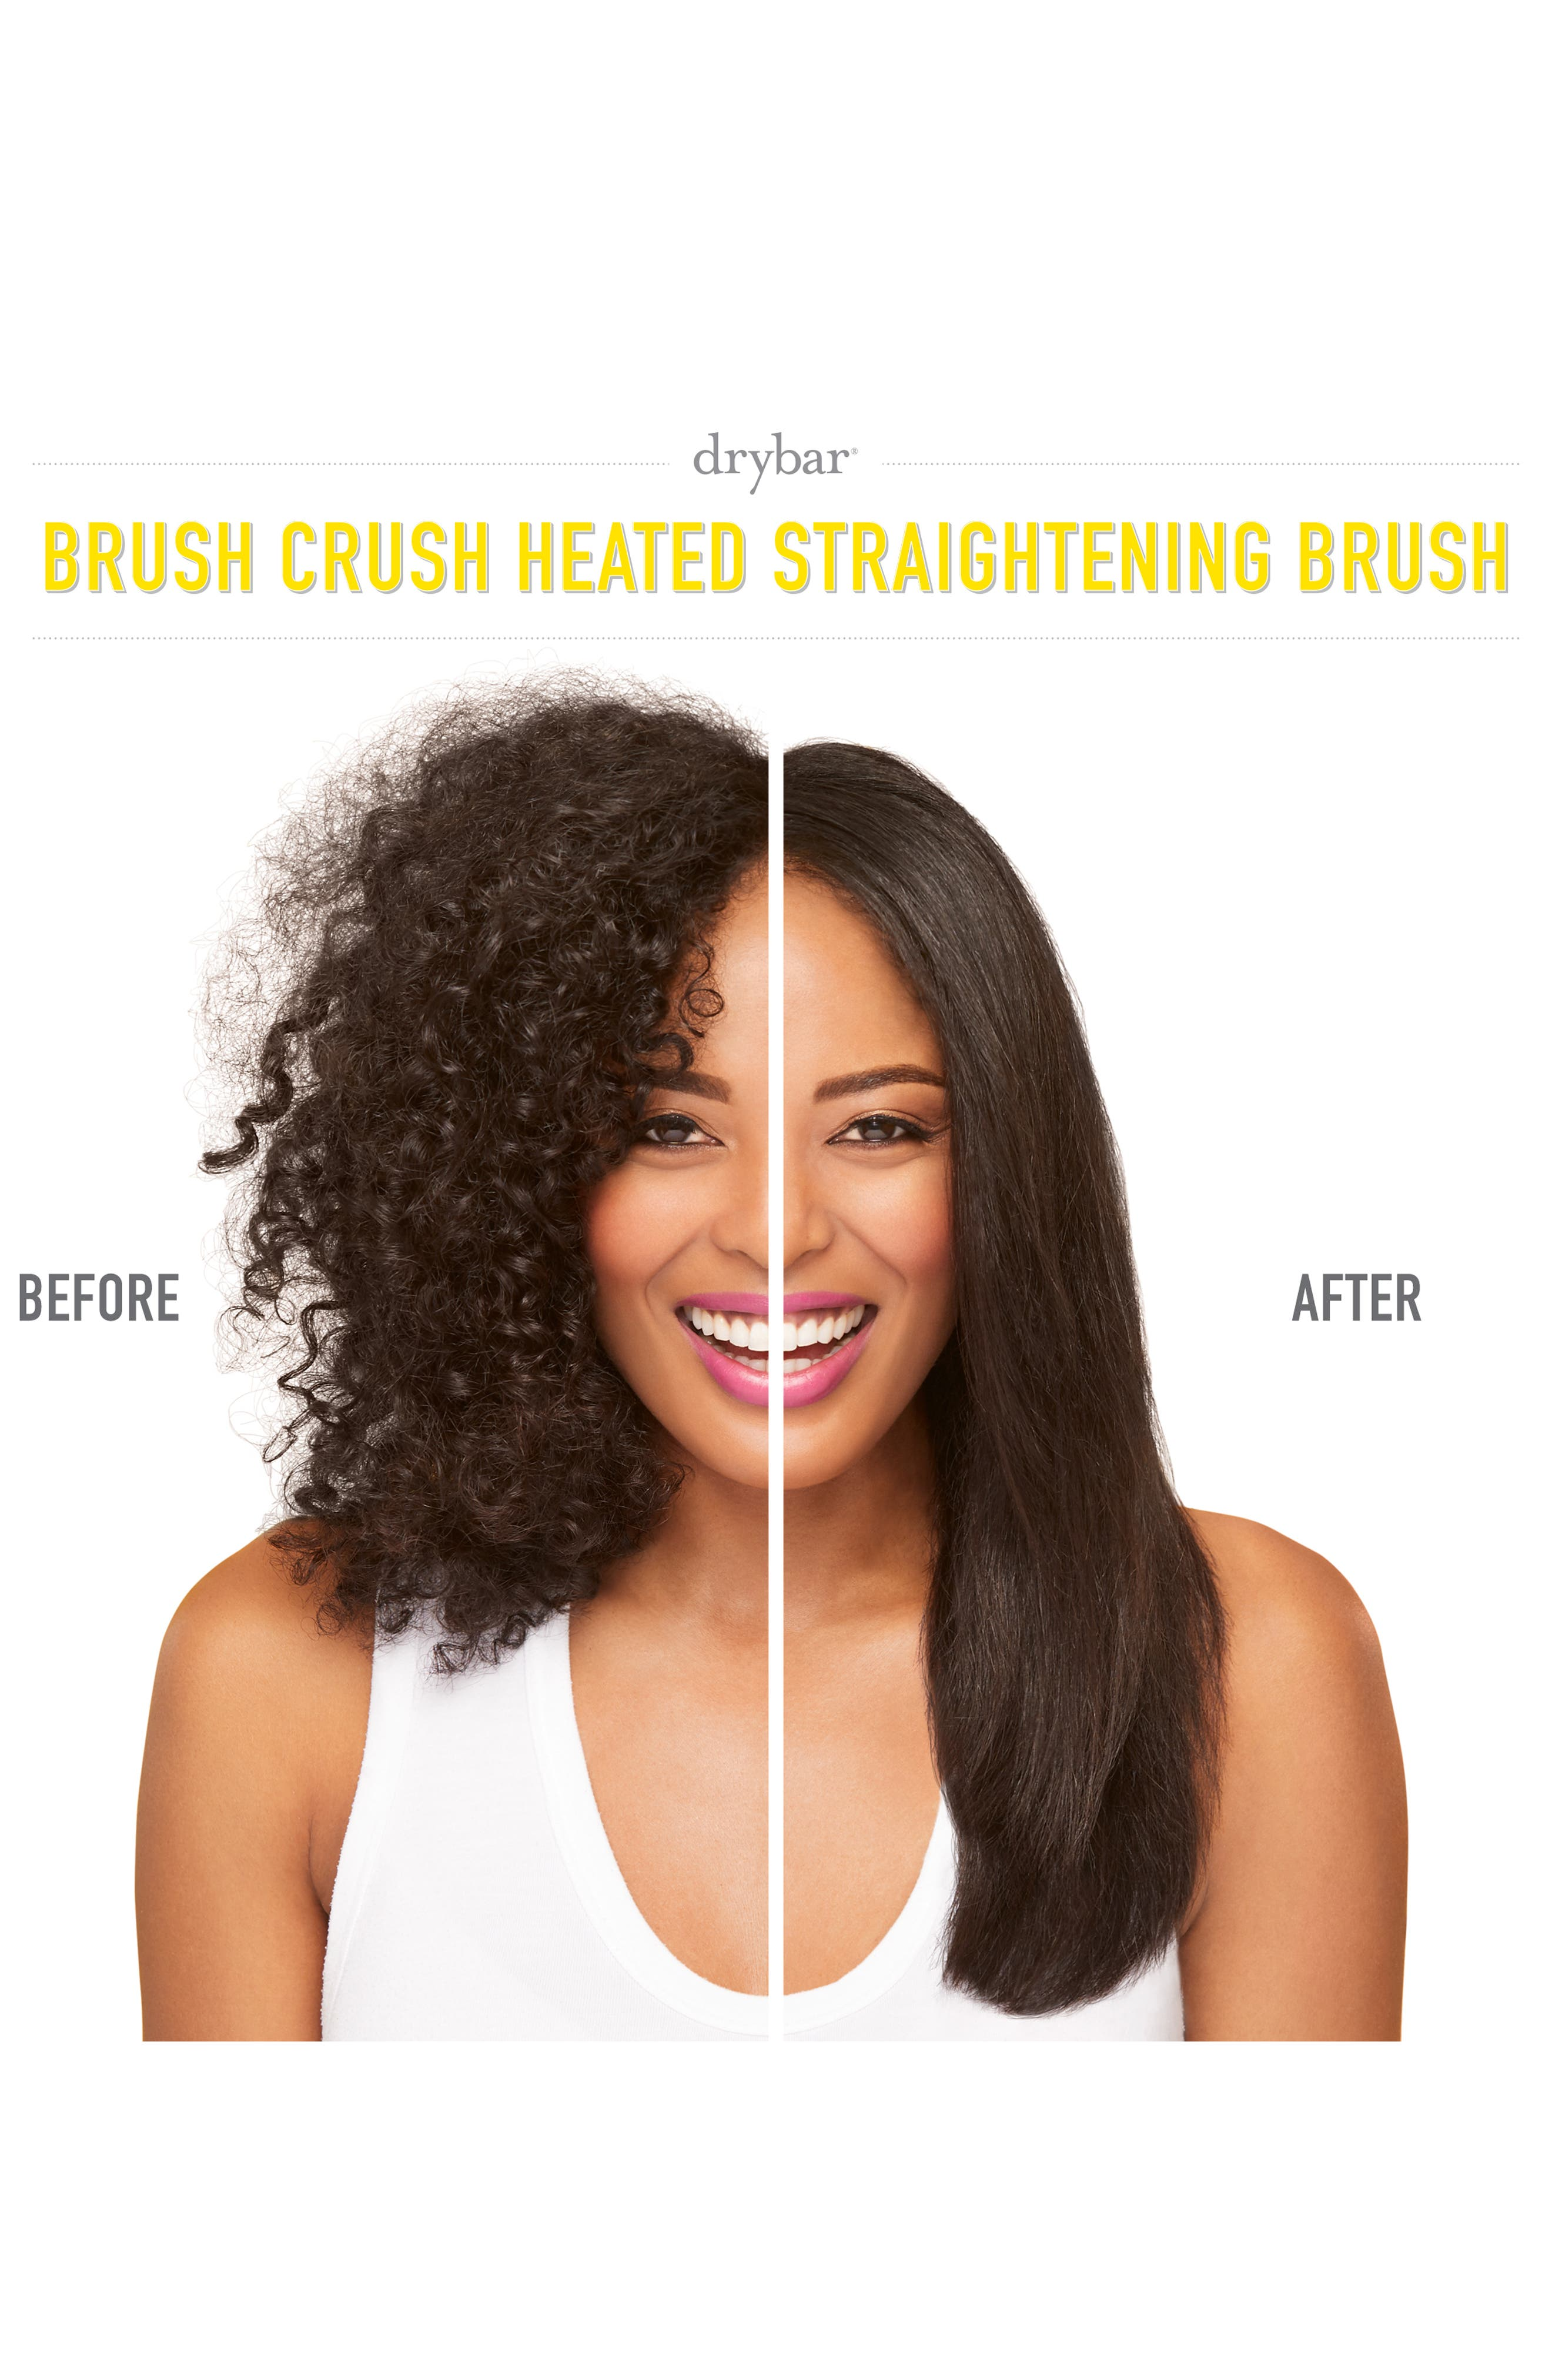 The Brush Crush Heated Straightening Brush,                             Alternate thumbnail 3, color,                             NO COLOR